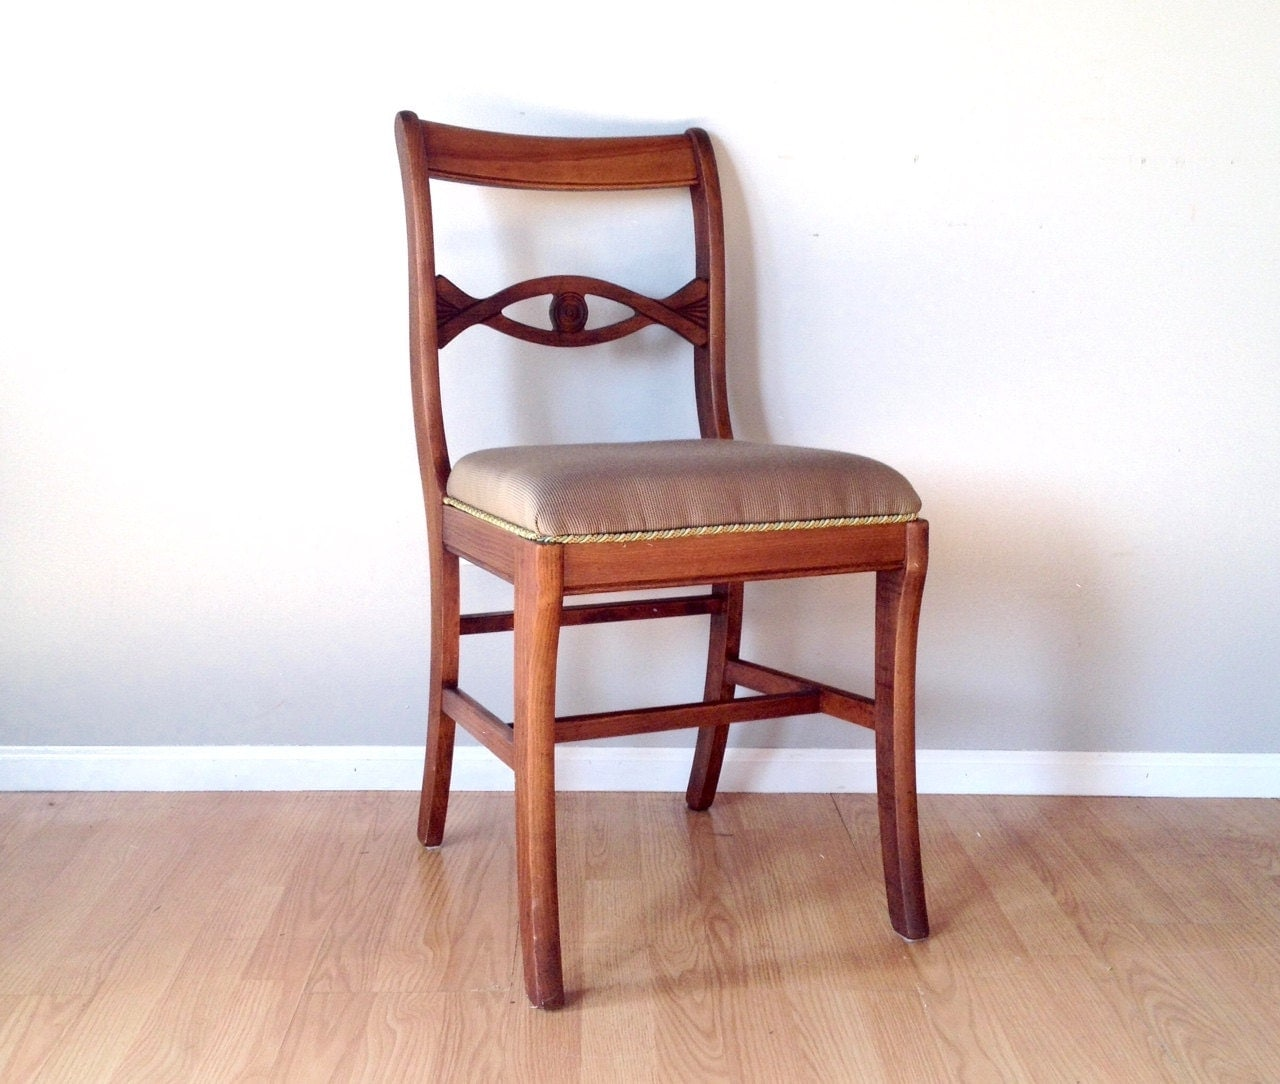 vintage Tell City mahogany chair. retro furniture. dining room